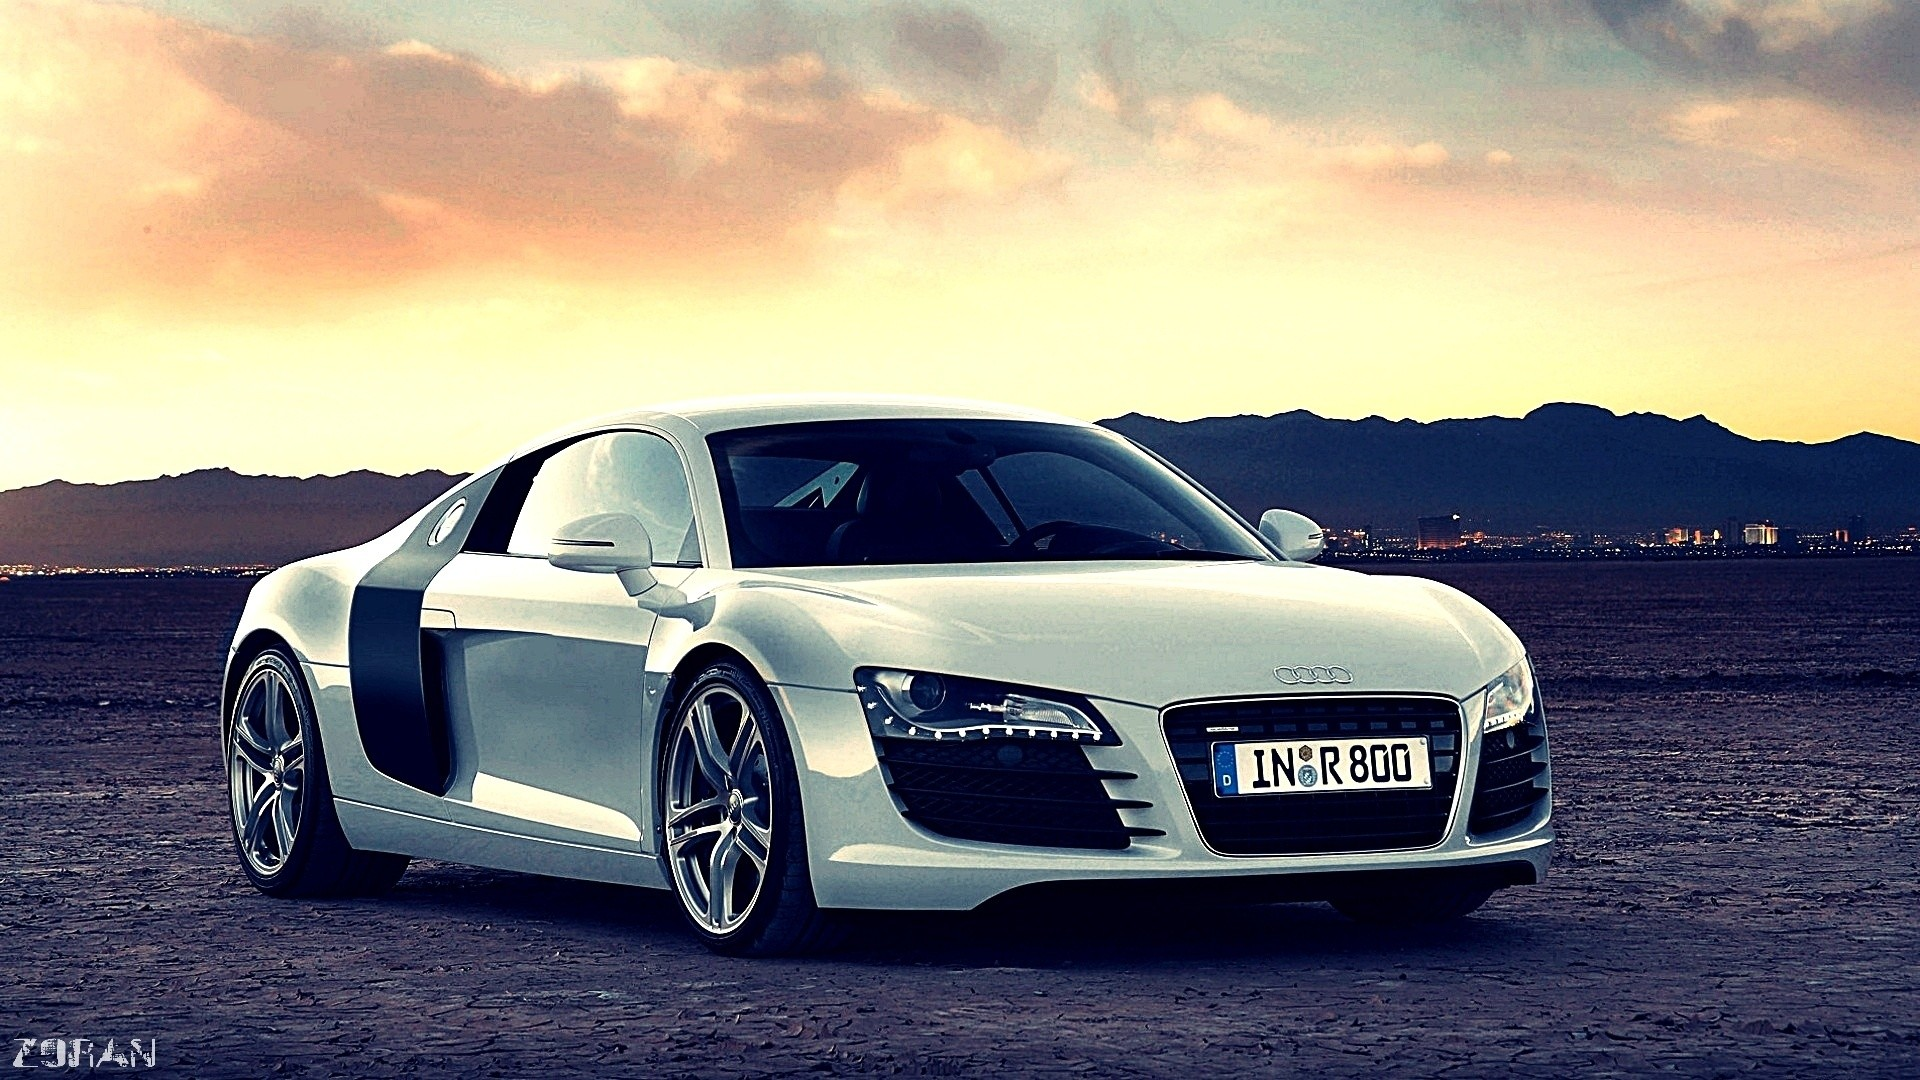 Audi R8 Wallpaper, HD, Wallpaper audi, audi, r8 desktop